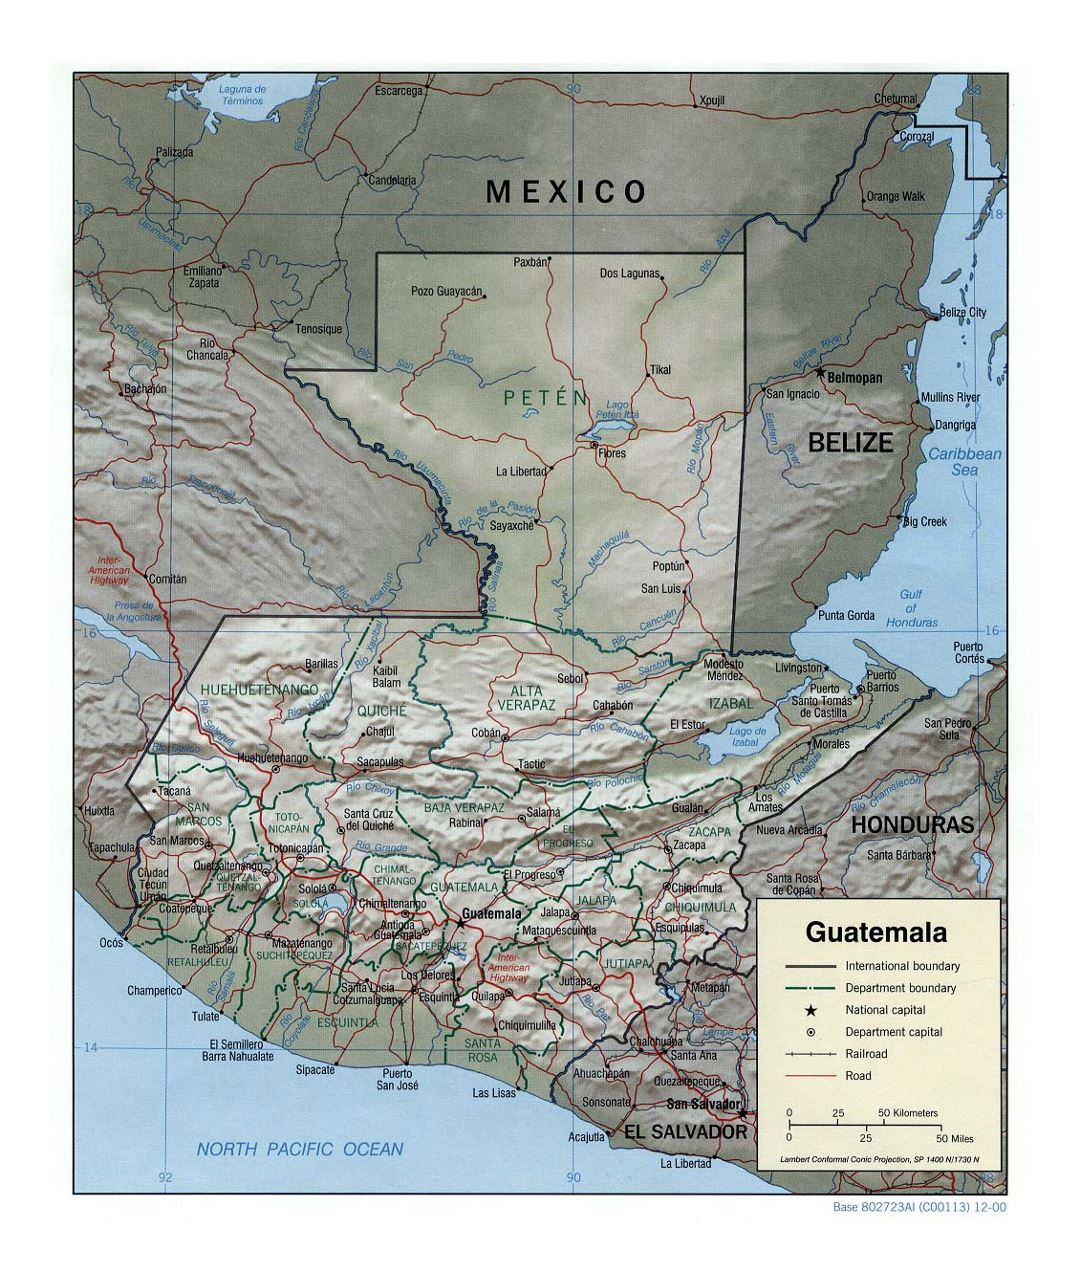 Detailed political and administrative map of Guatemala with relief, roads, railroads and major cities - 2000